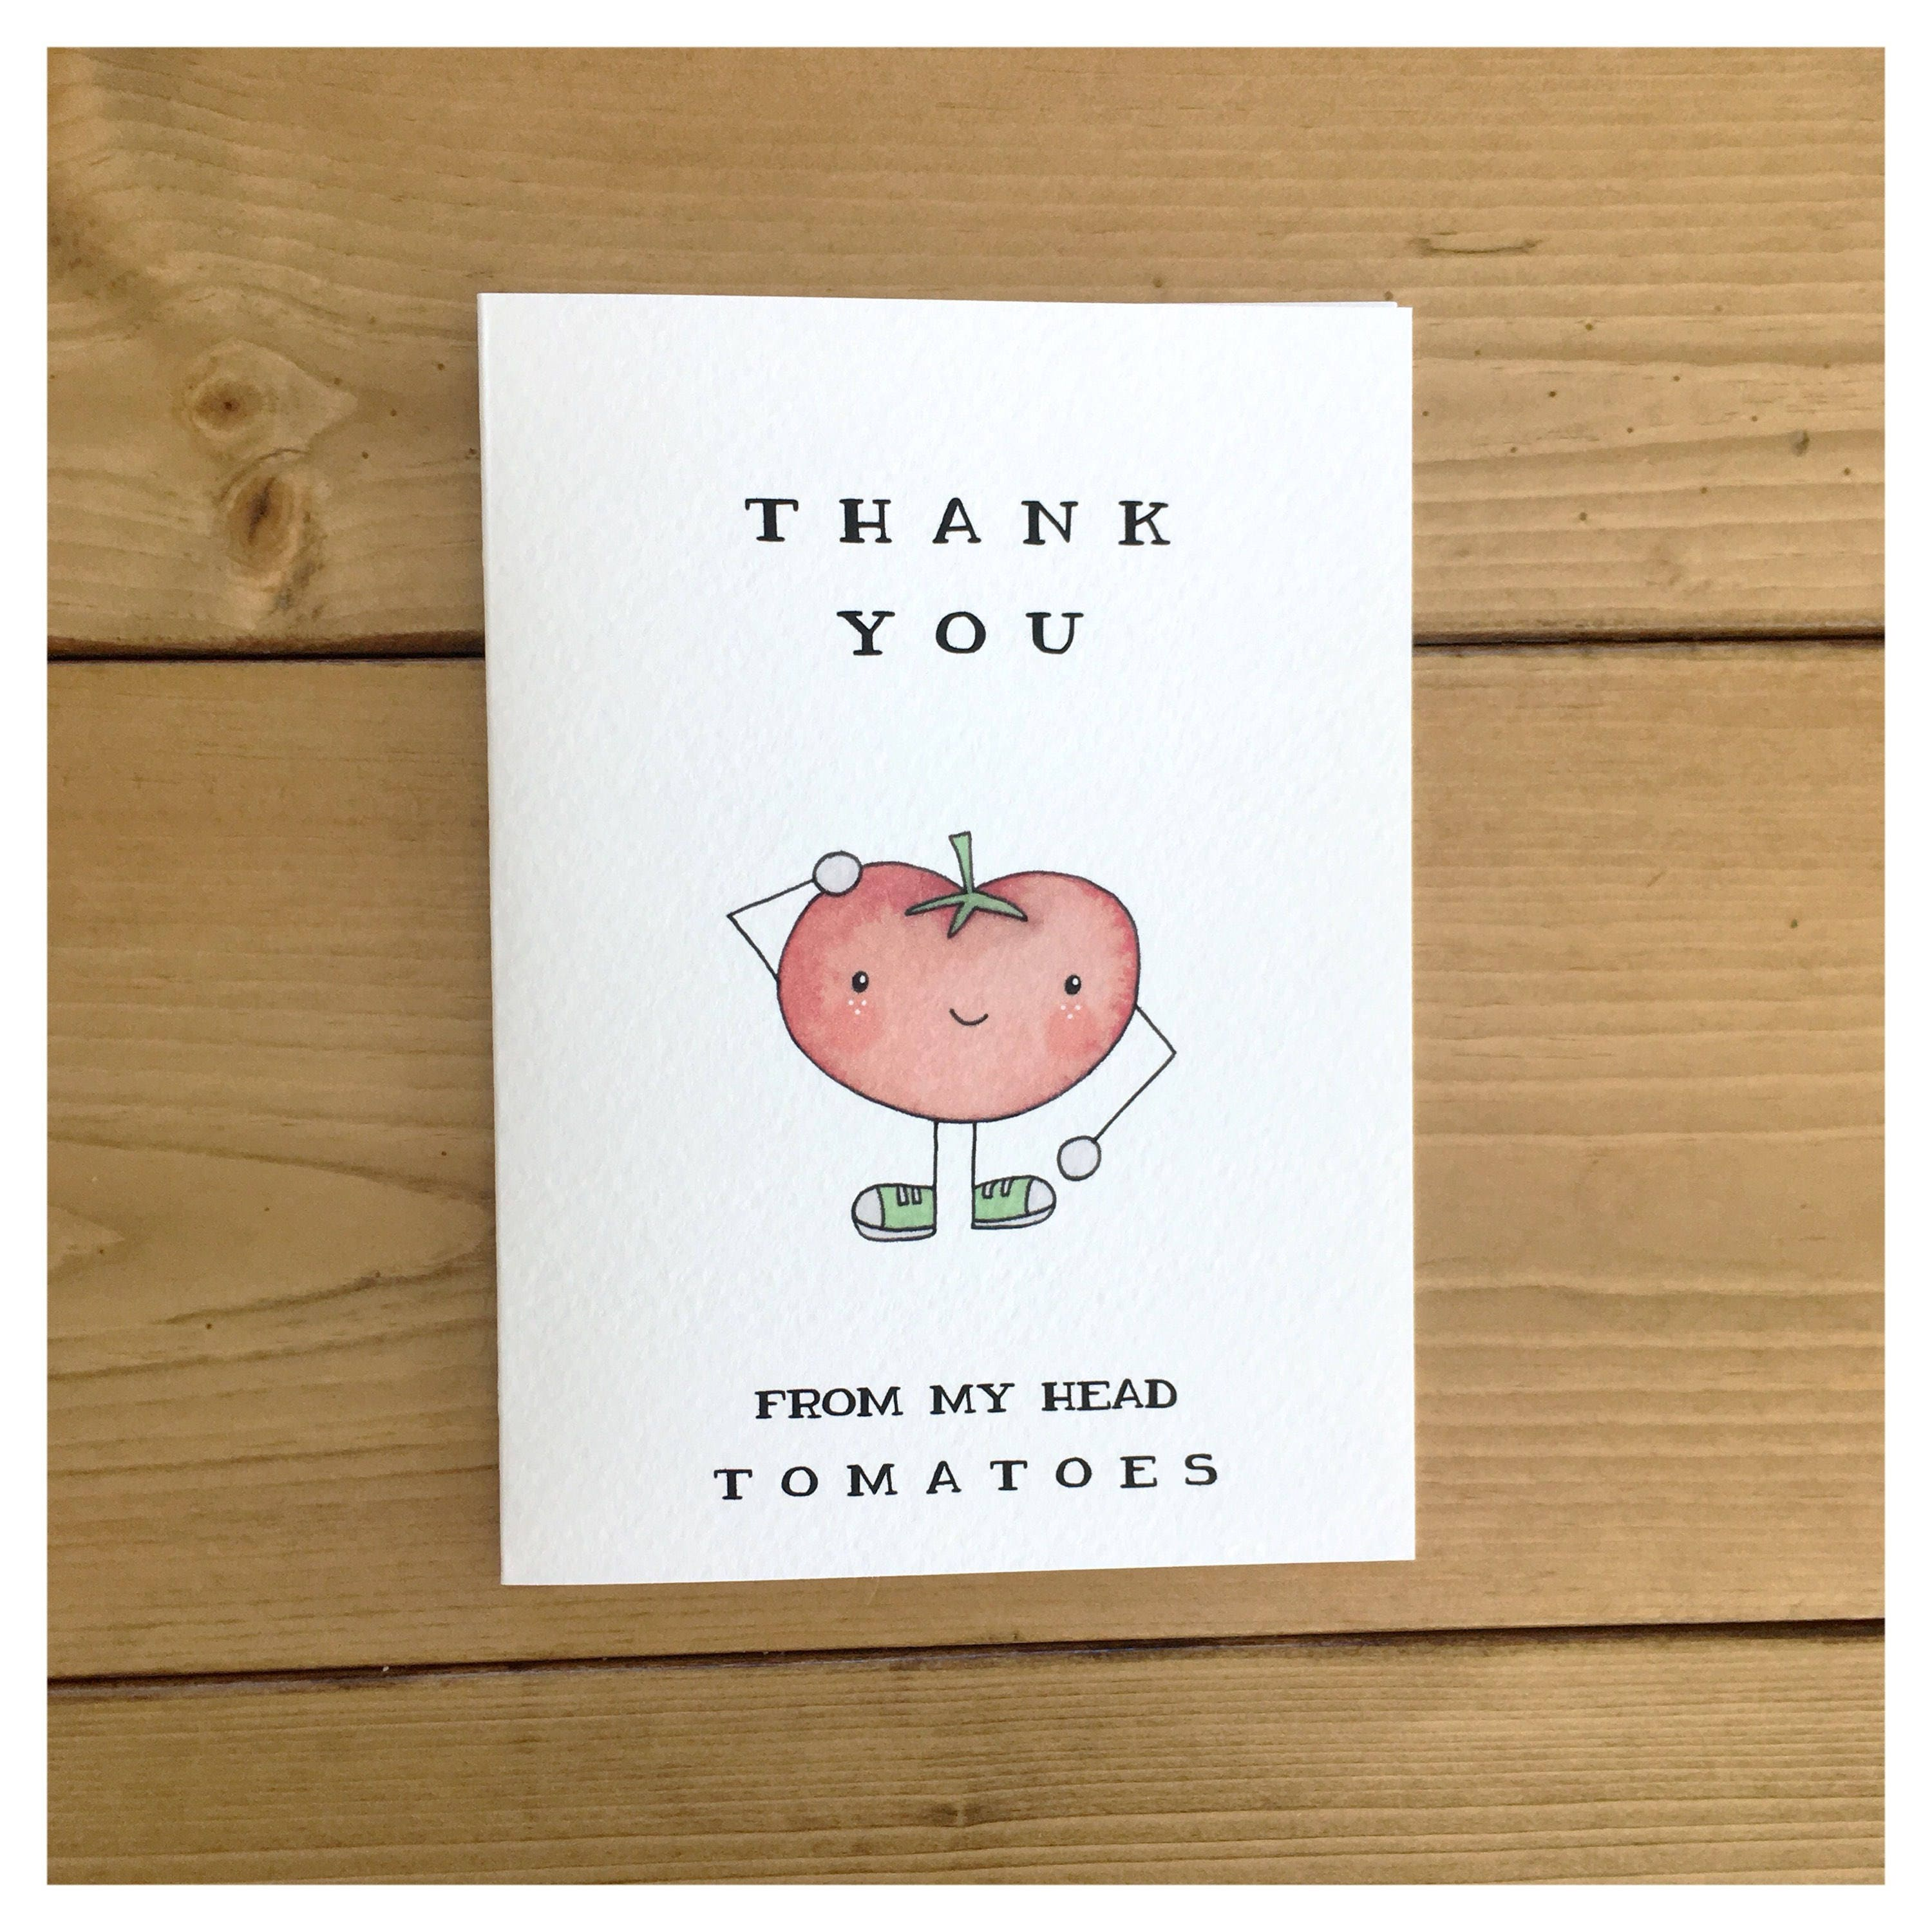 Vegetable card tomatoe card vegetable decor vegetable pun vegetable card tomatoe card vegetable decor vegetable pun pun punny thank you card greeting card thank you gift funny card vegan kristyandbryce Image collections